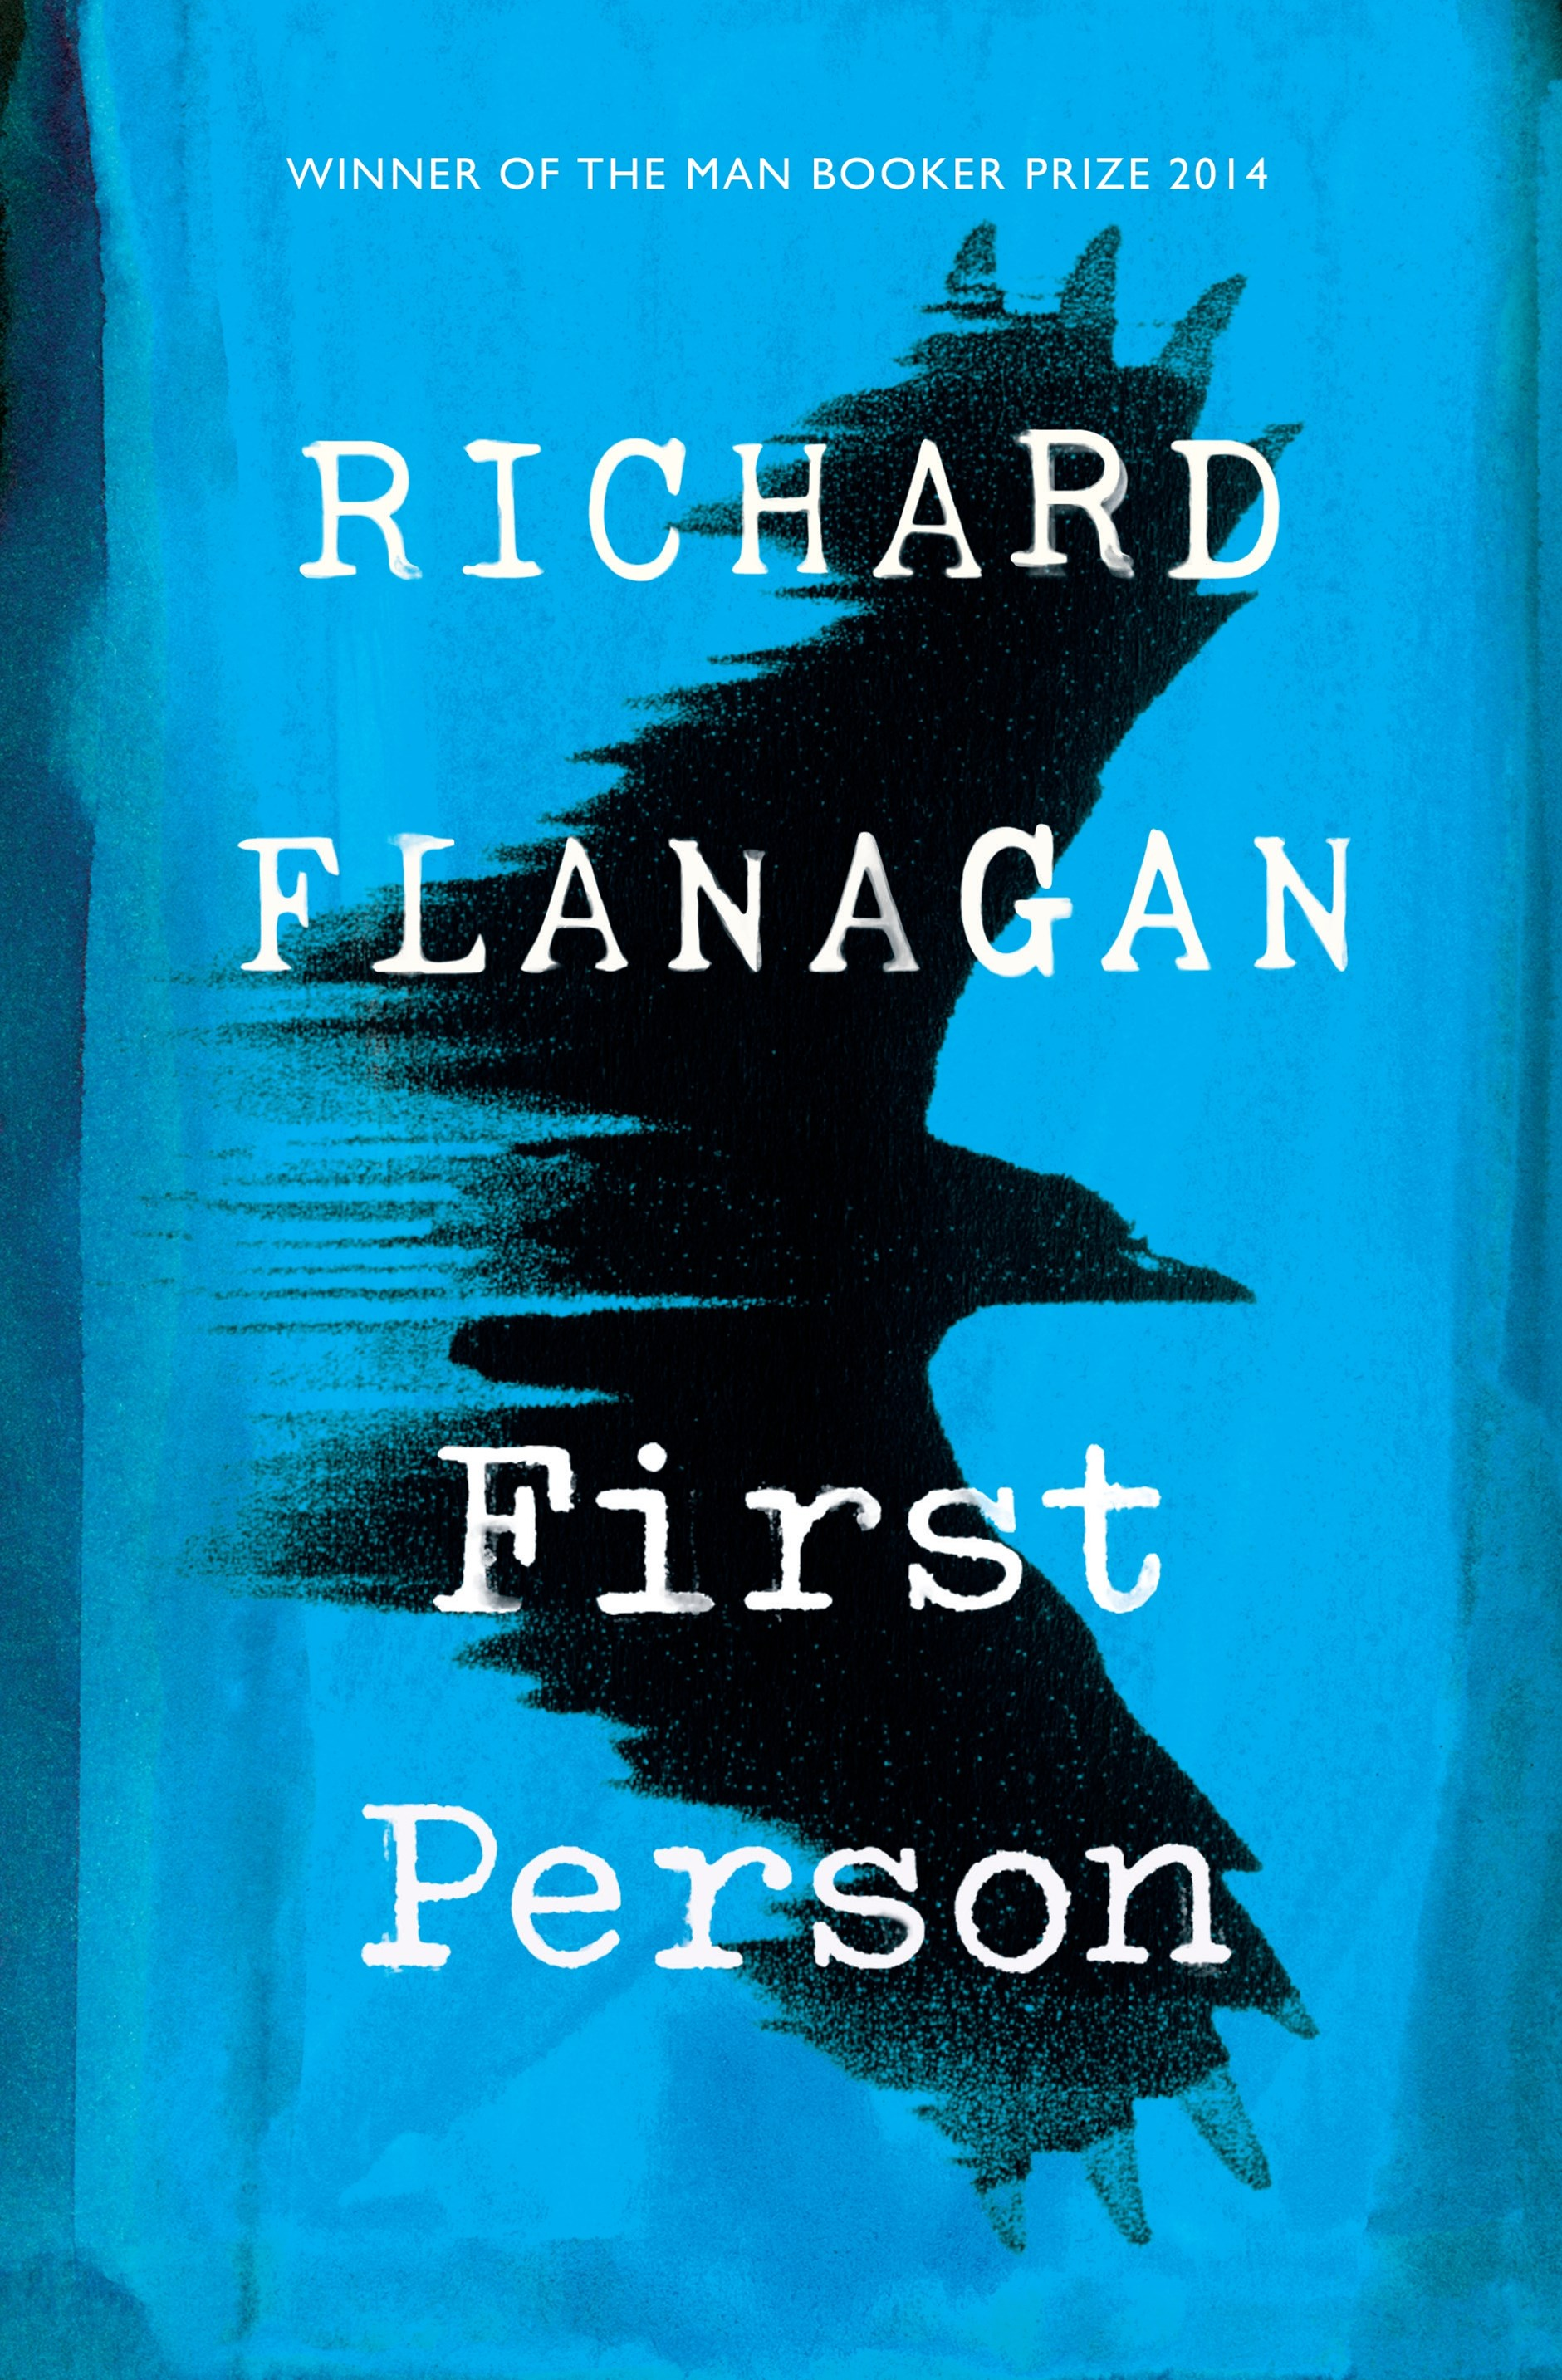 An evening with Man Booker Prize winner Richard Flanagan